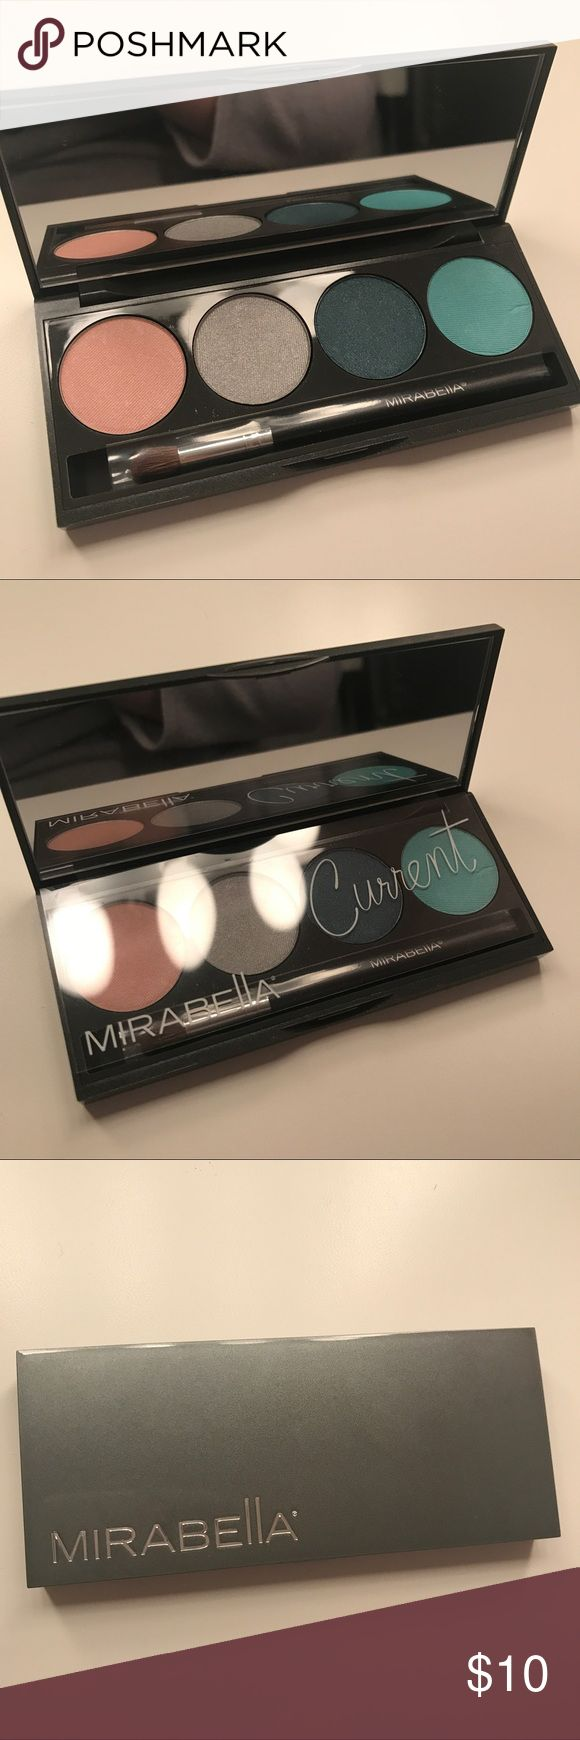 Mirabella Current Eyeshadow Palette New with tags! Never used! Comes with box and plastic cover. (Scratch on last shadow was from the corner of the plastic cover) Comes with free full sized brush! Mirabella Makeup Eyeshadow